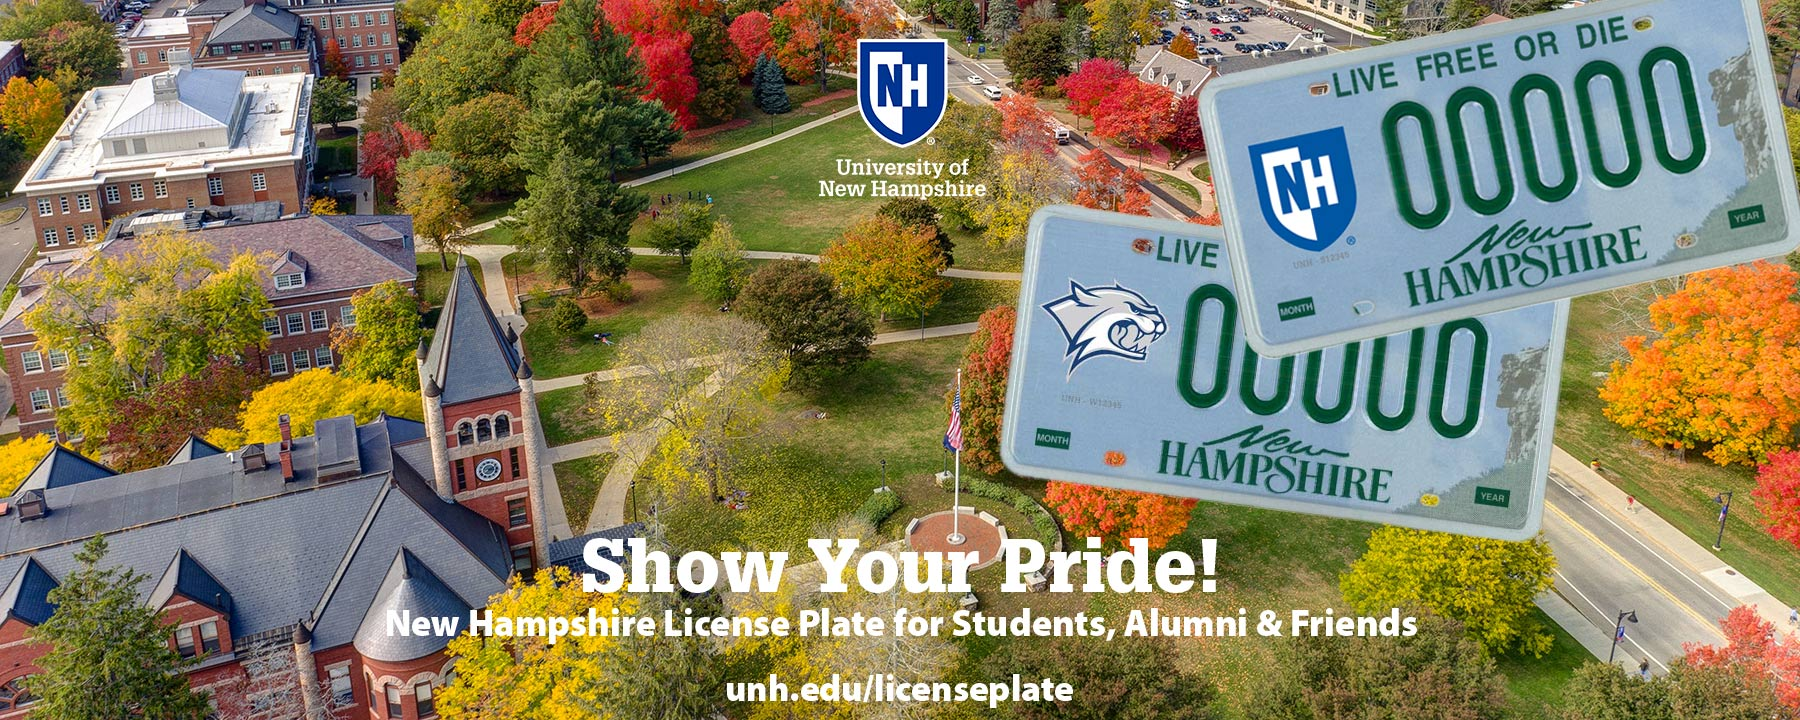 NH state license plate with UNH decal